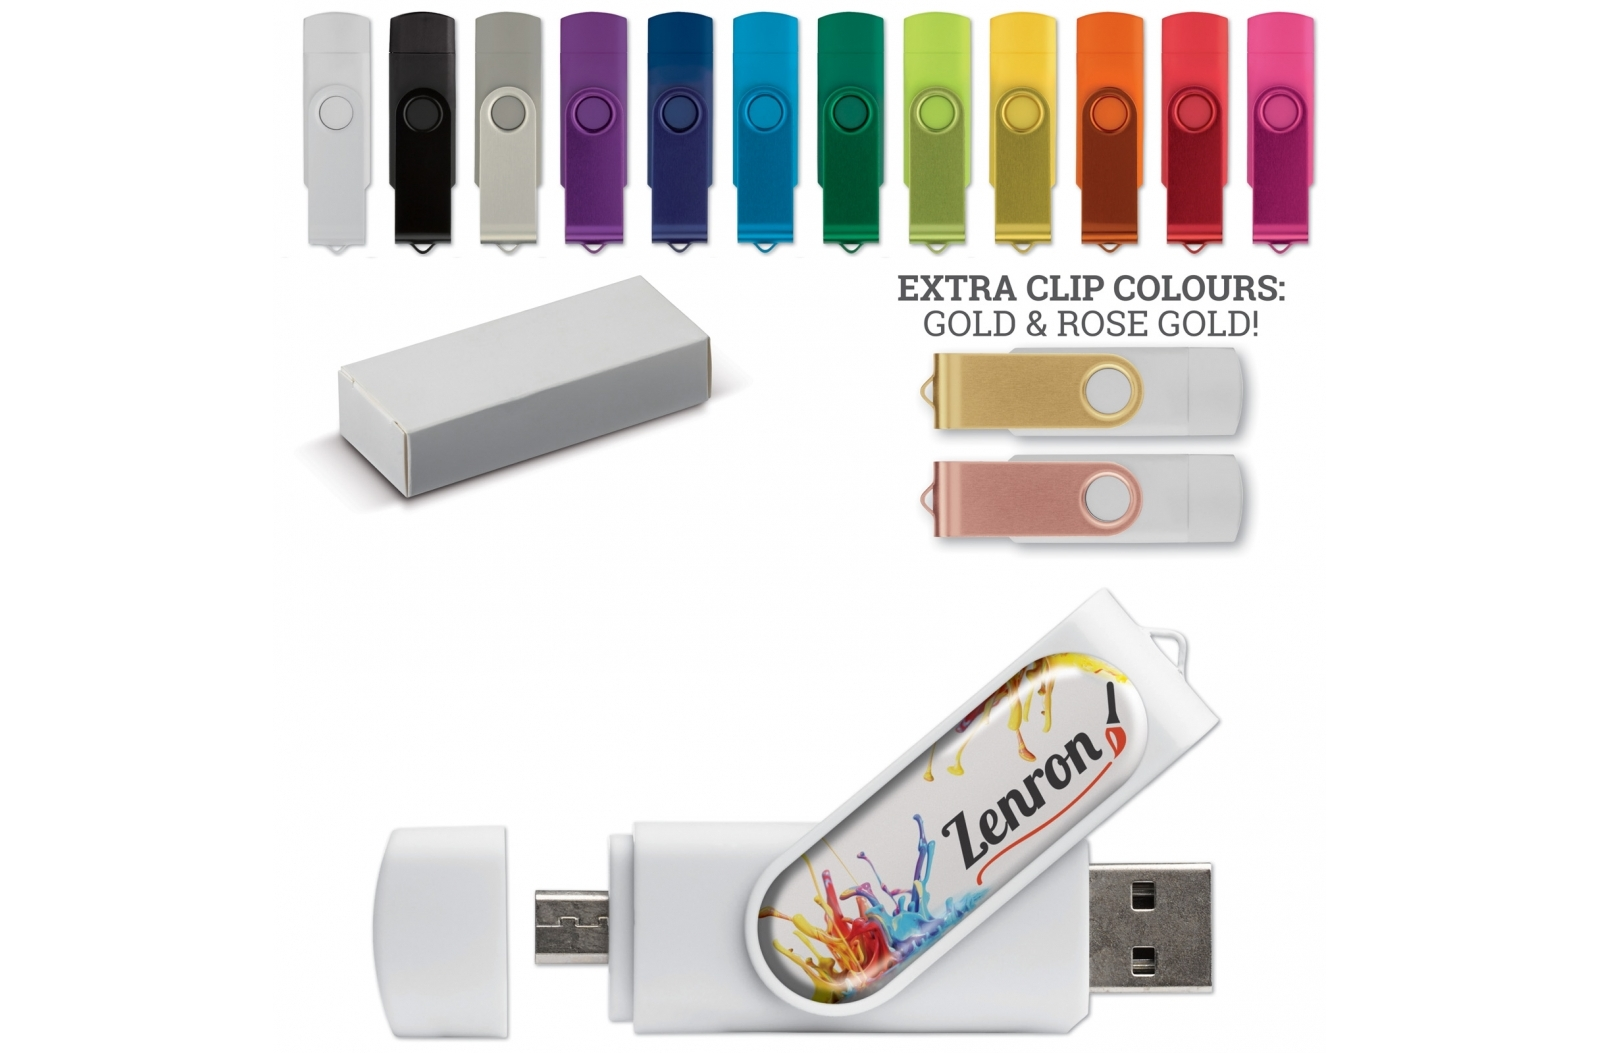 USB Stick 2.0 On-the-go 16gb Doming